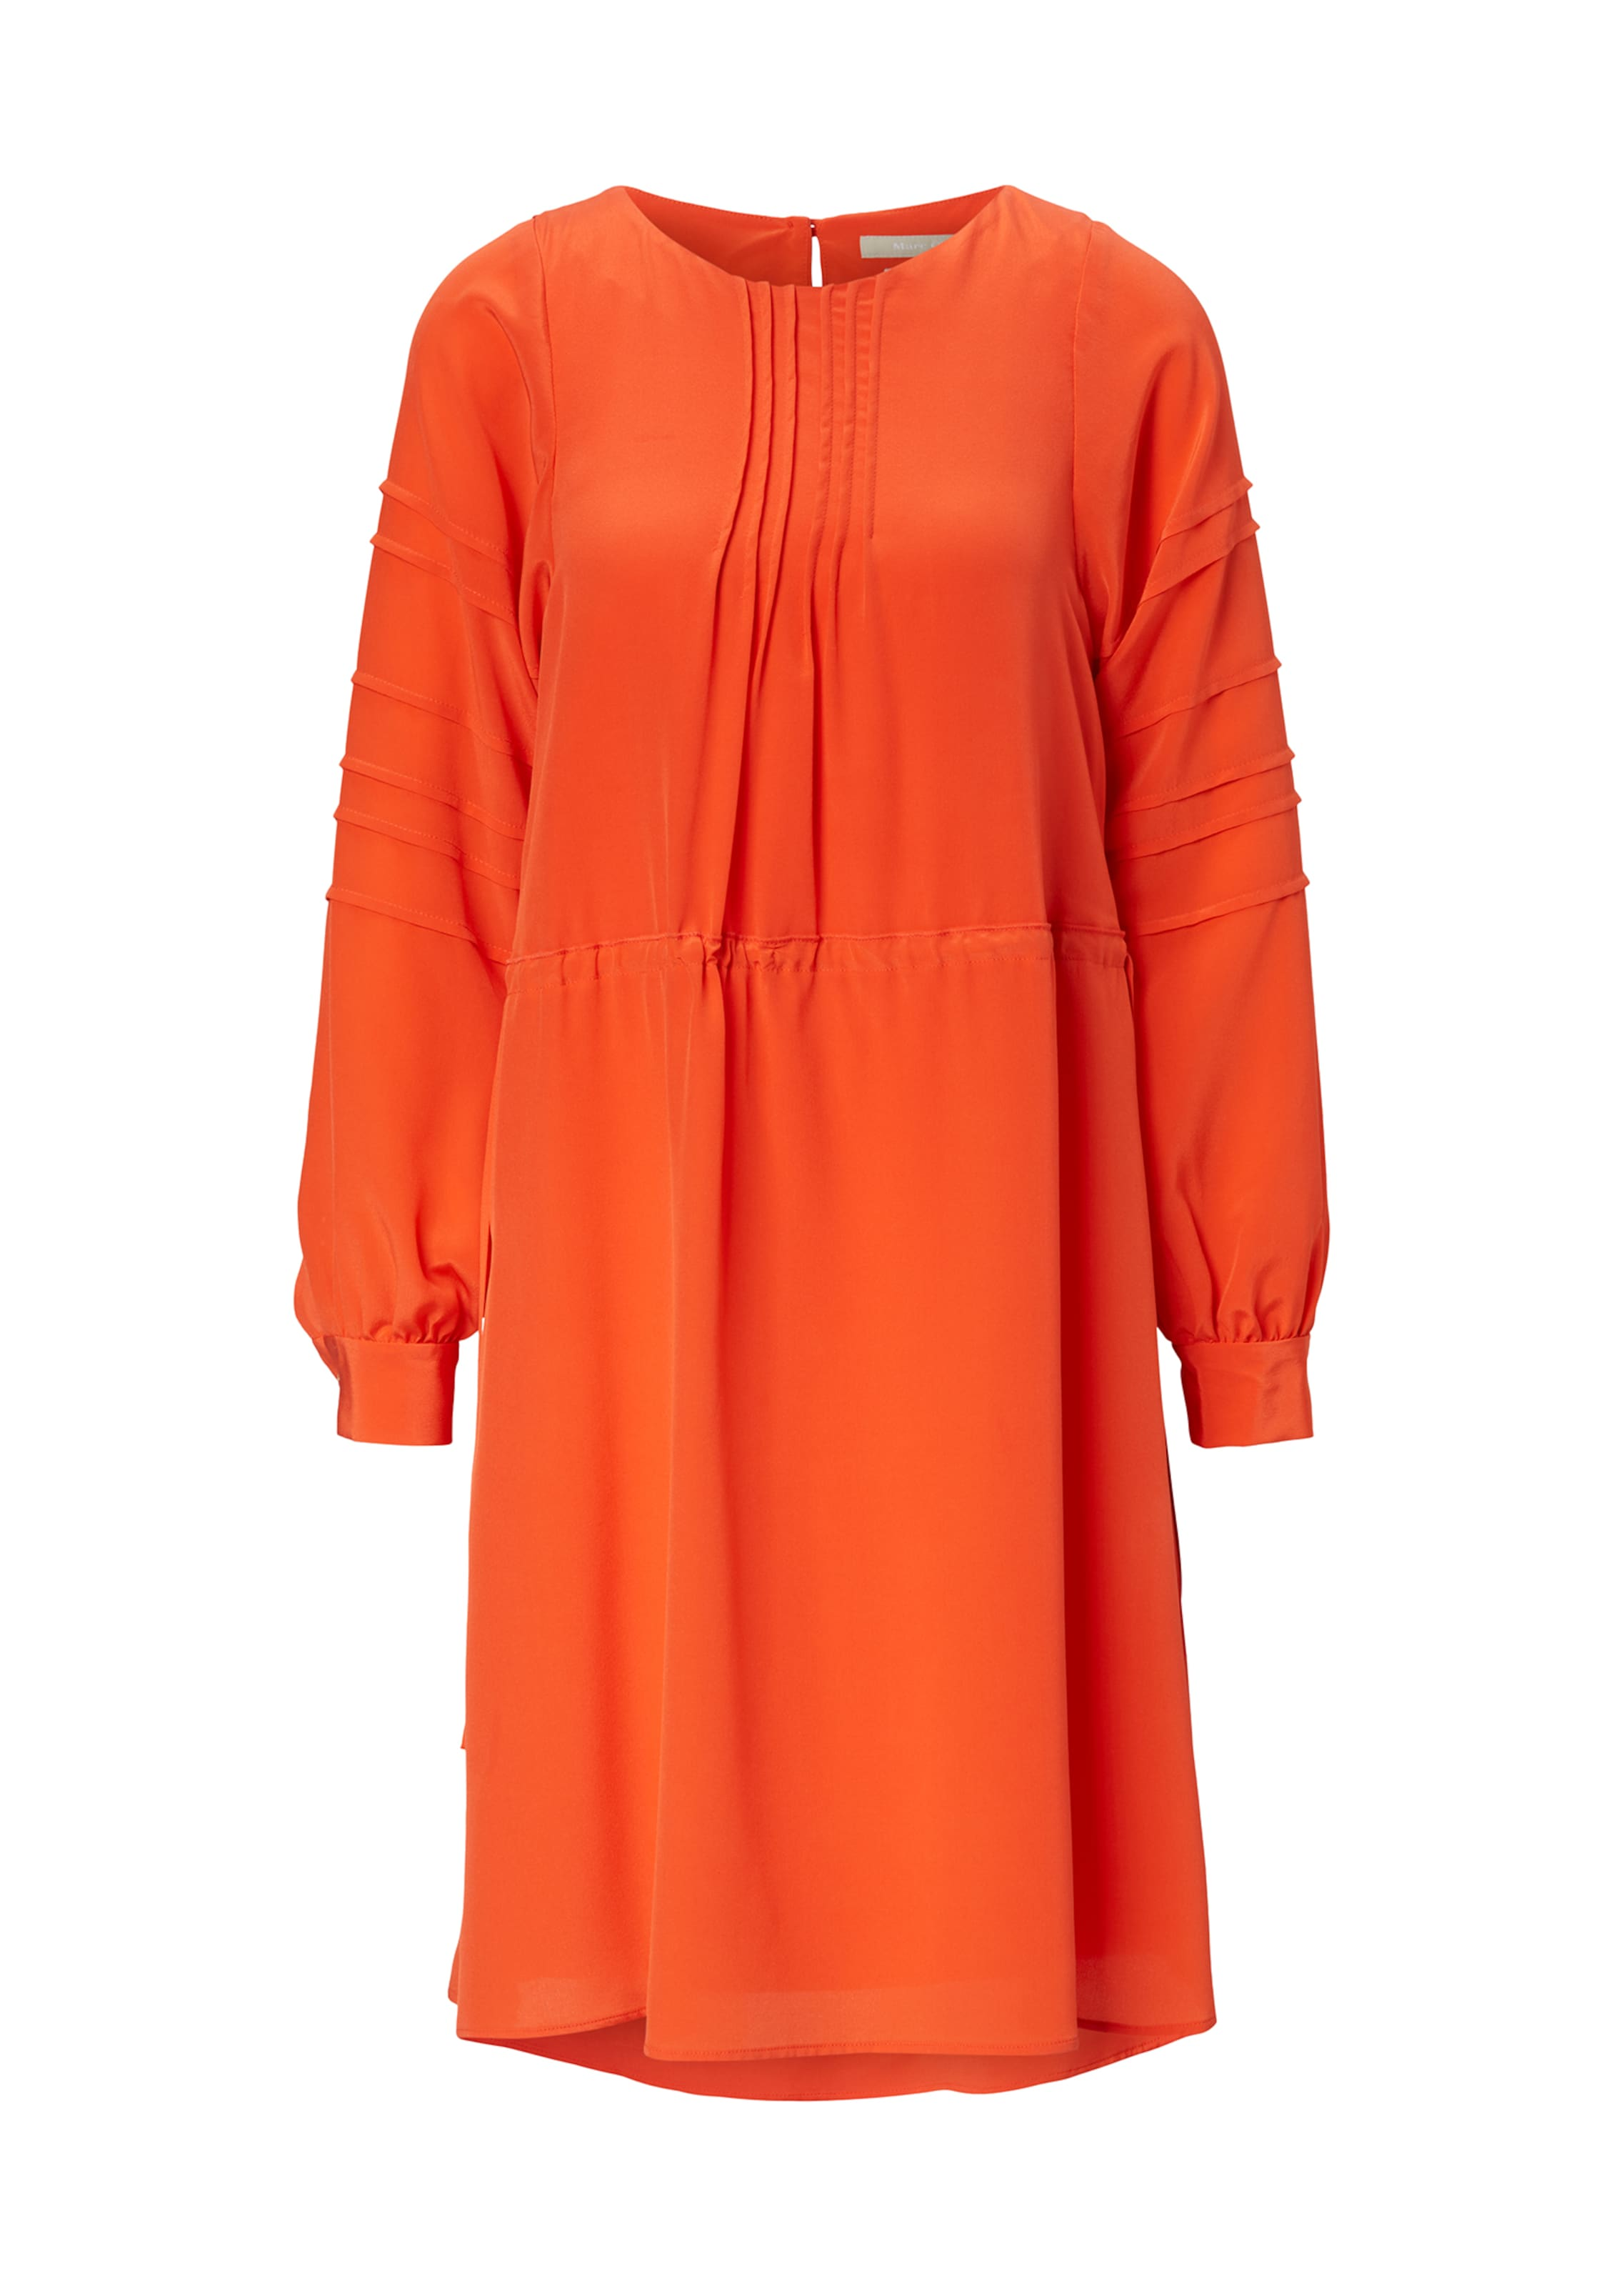 O'polo In Kleid Orangerot Marc Pure ygY6vf7b